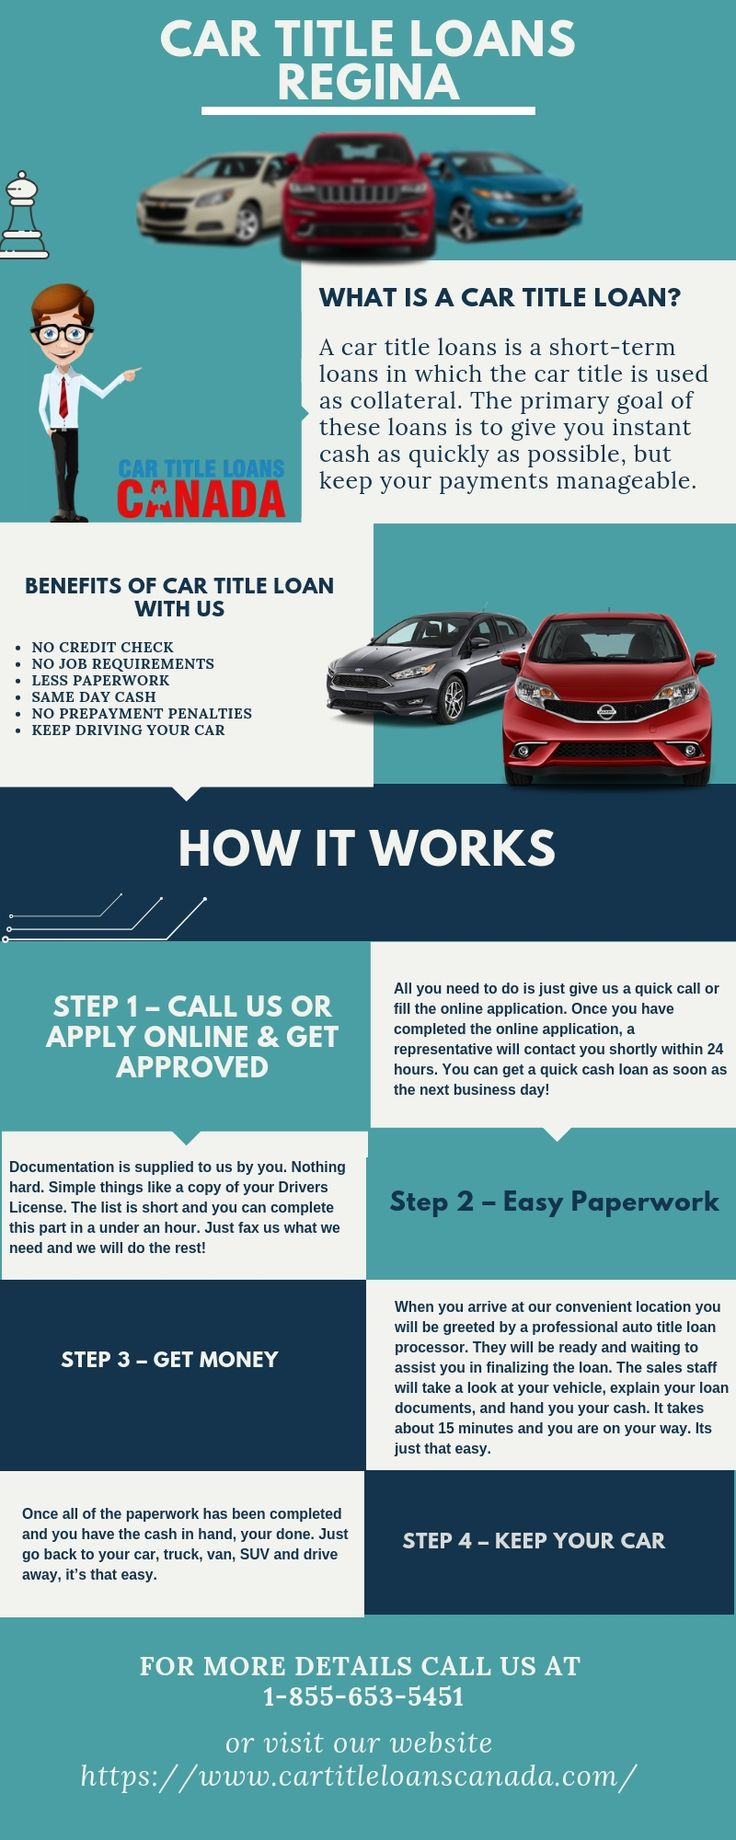 Do you need urgent financing now? Apply Now Car Title